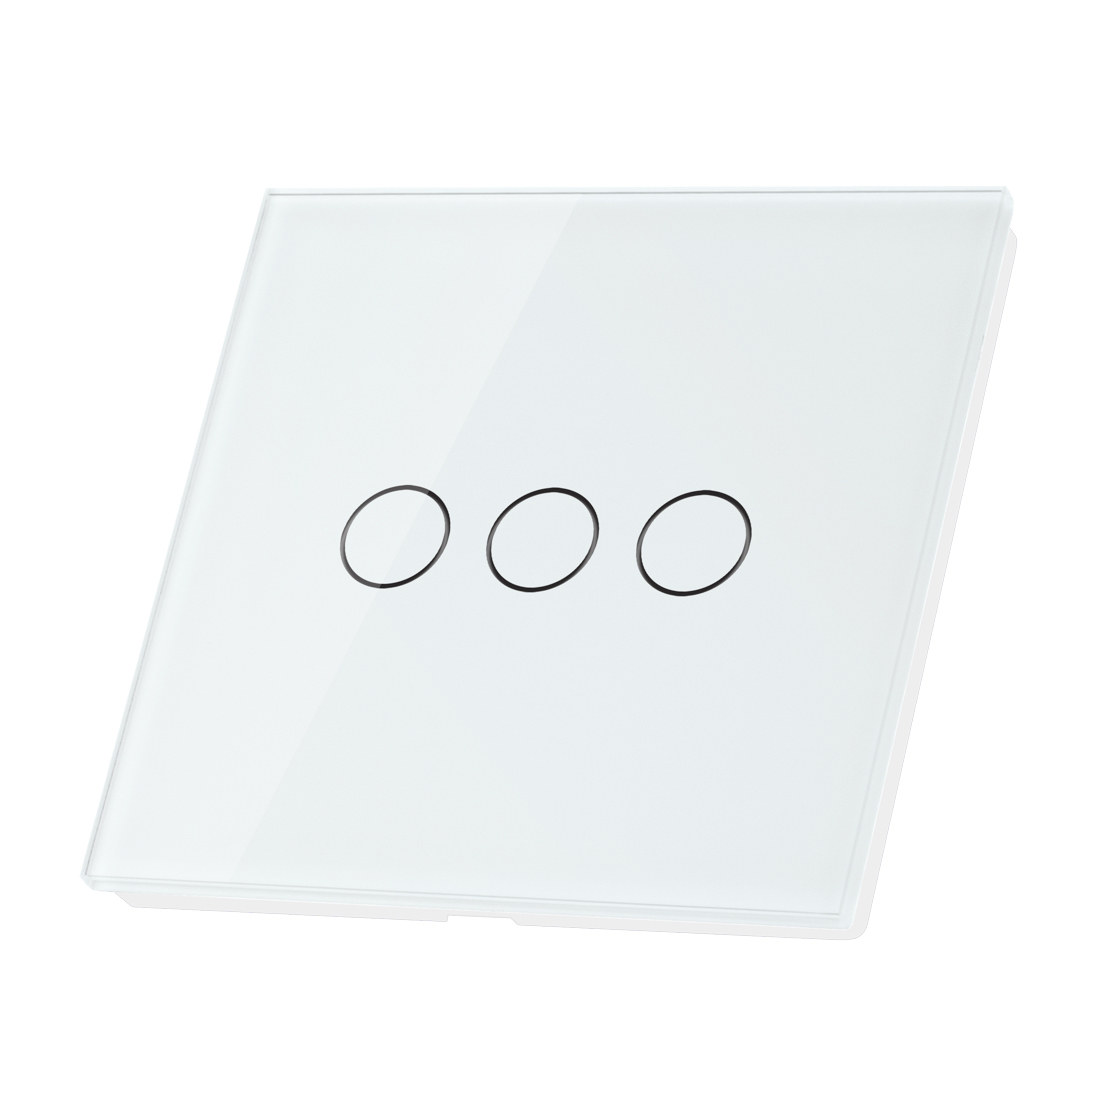 Crystal Glass 3 Gang 1 Way Panel Touch Home Wall Light Switch White